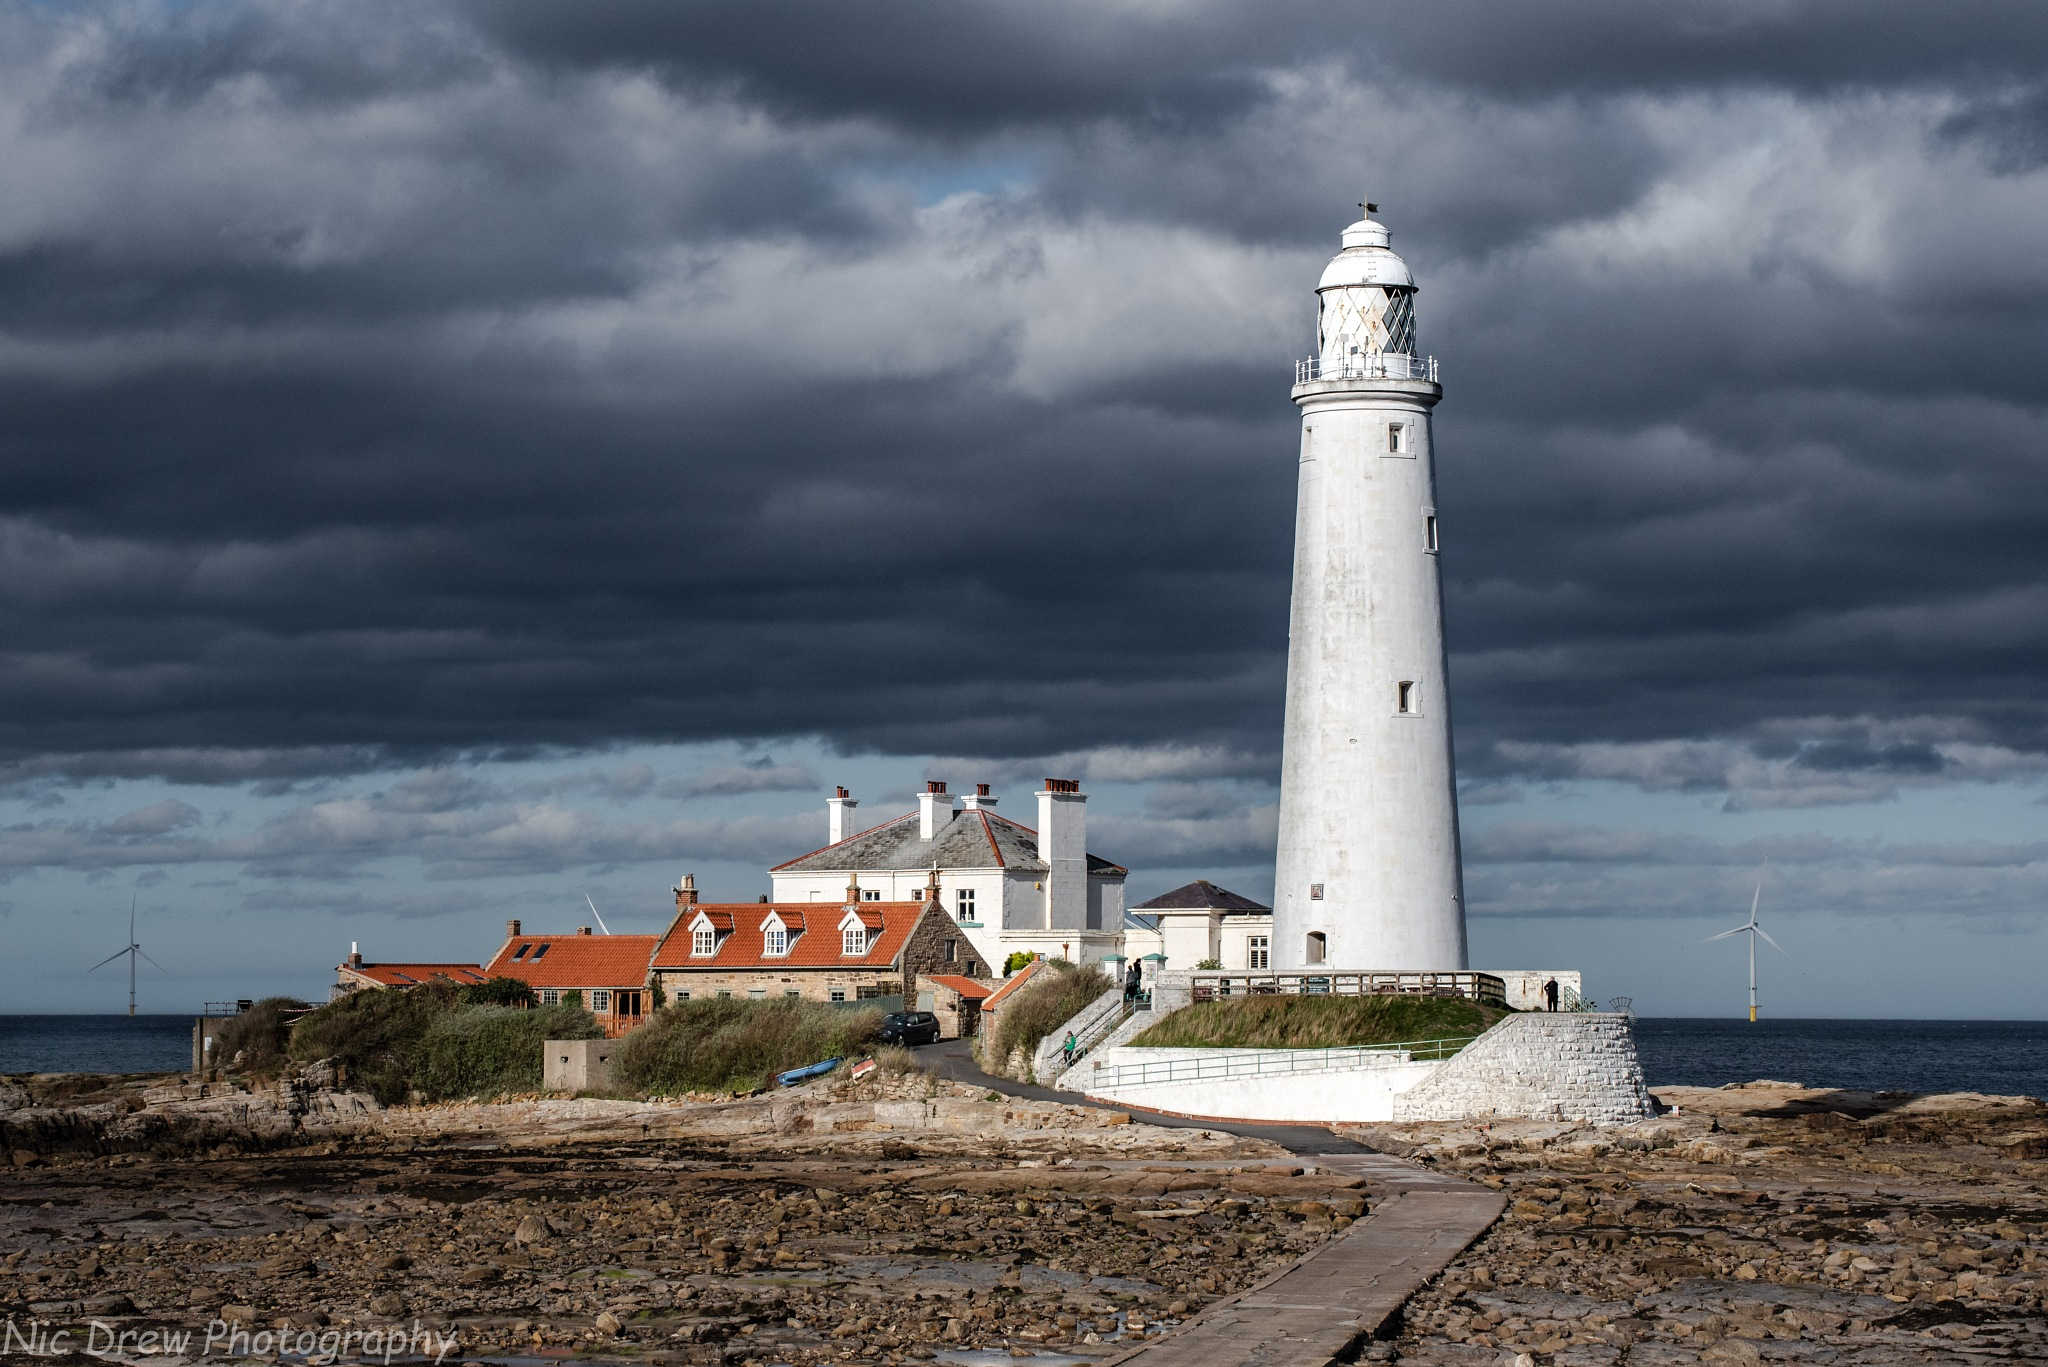 St Mary's lighthouse by Nic Drew